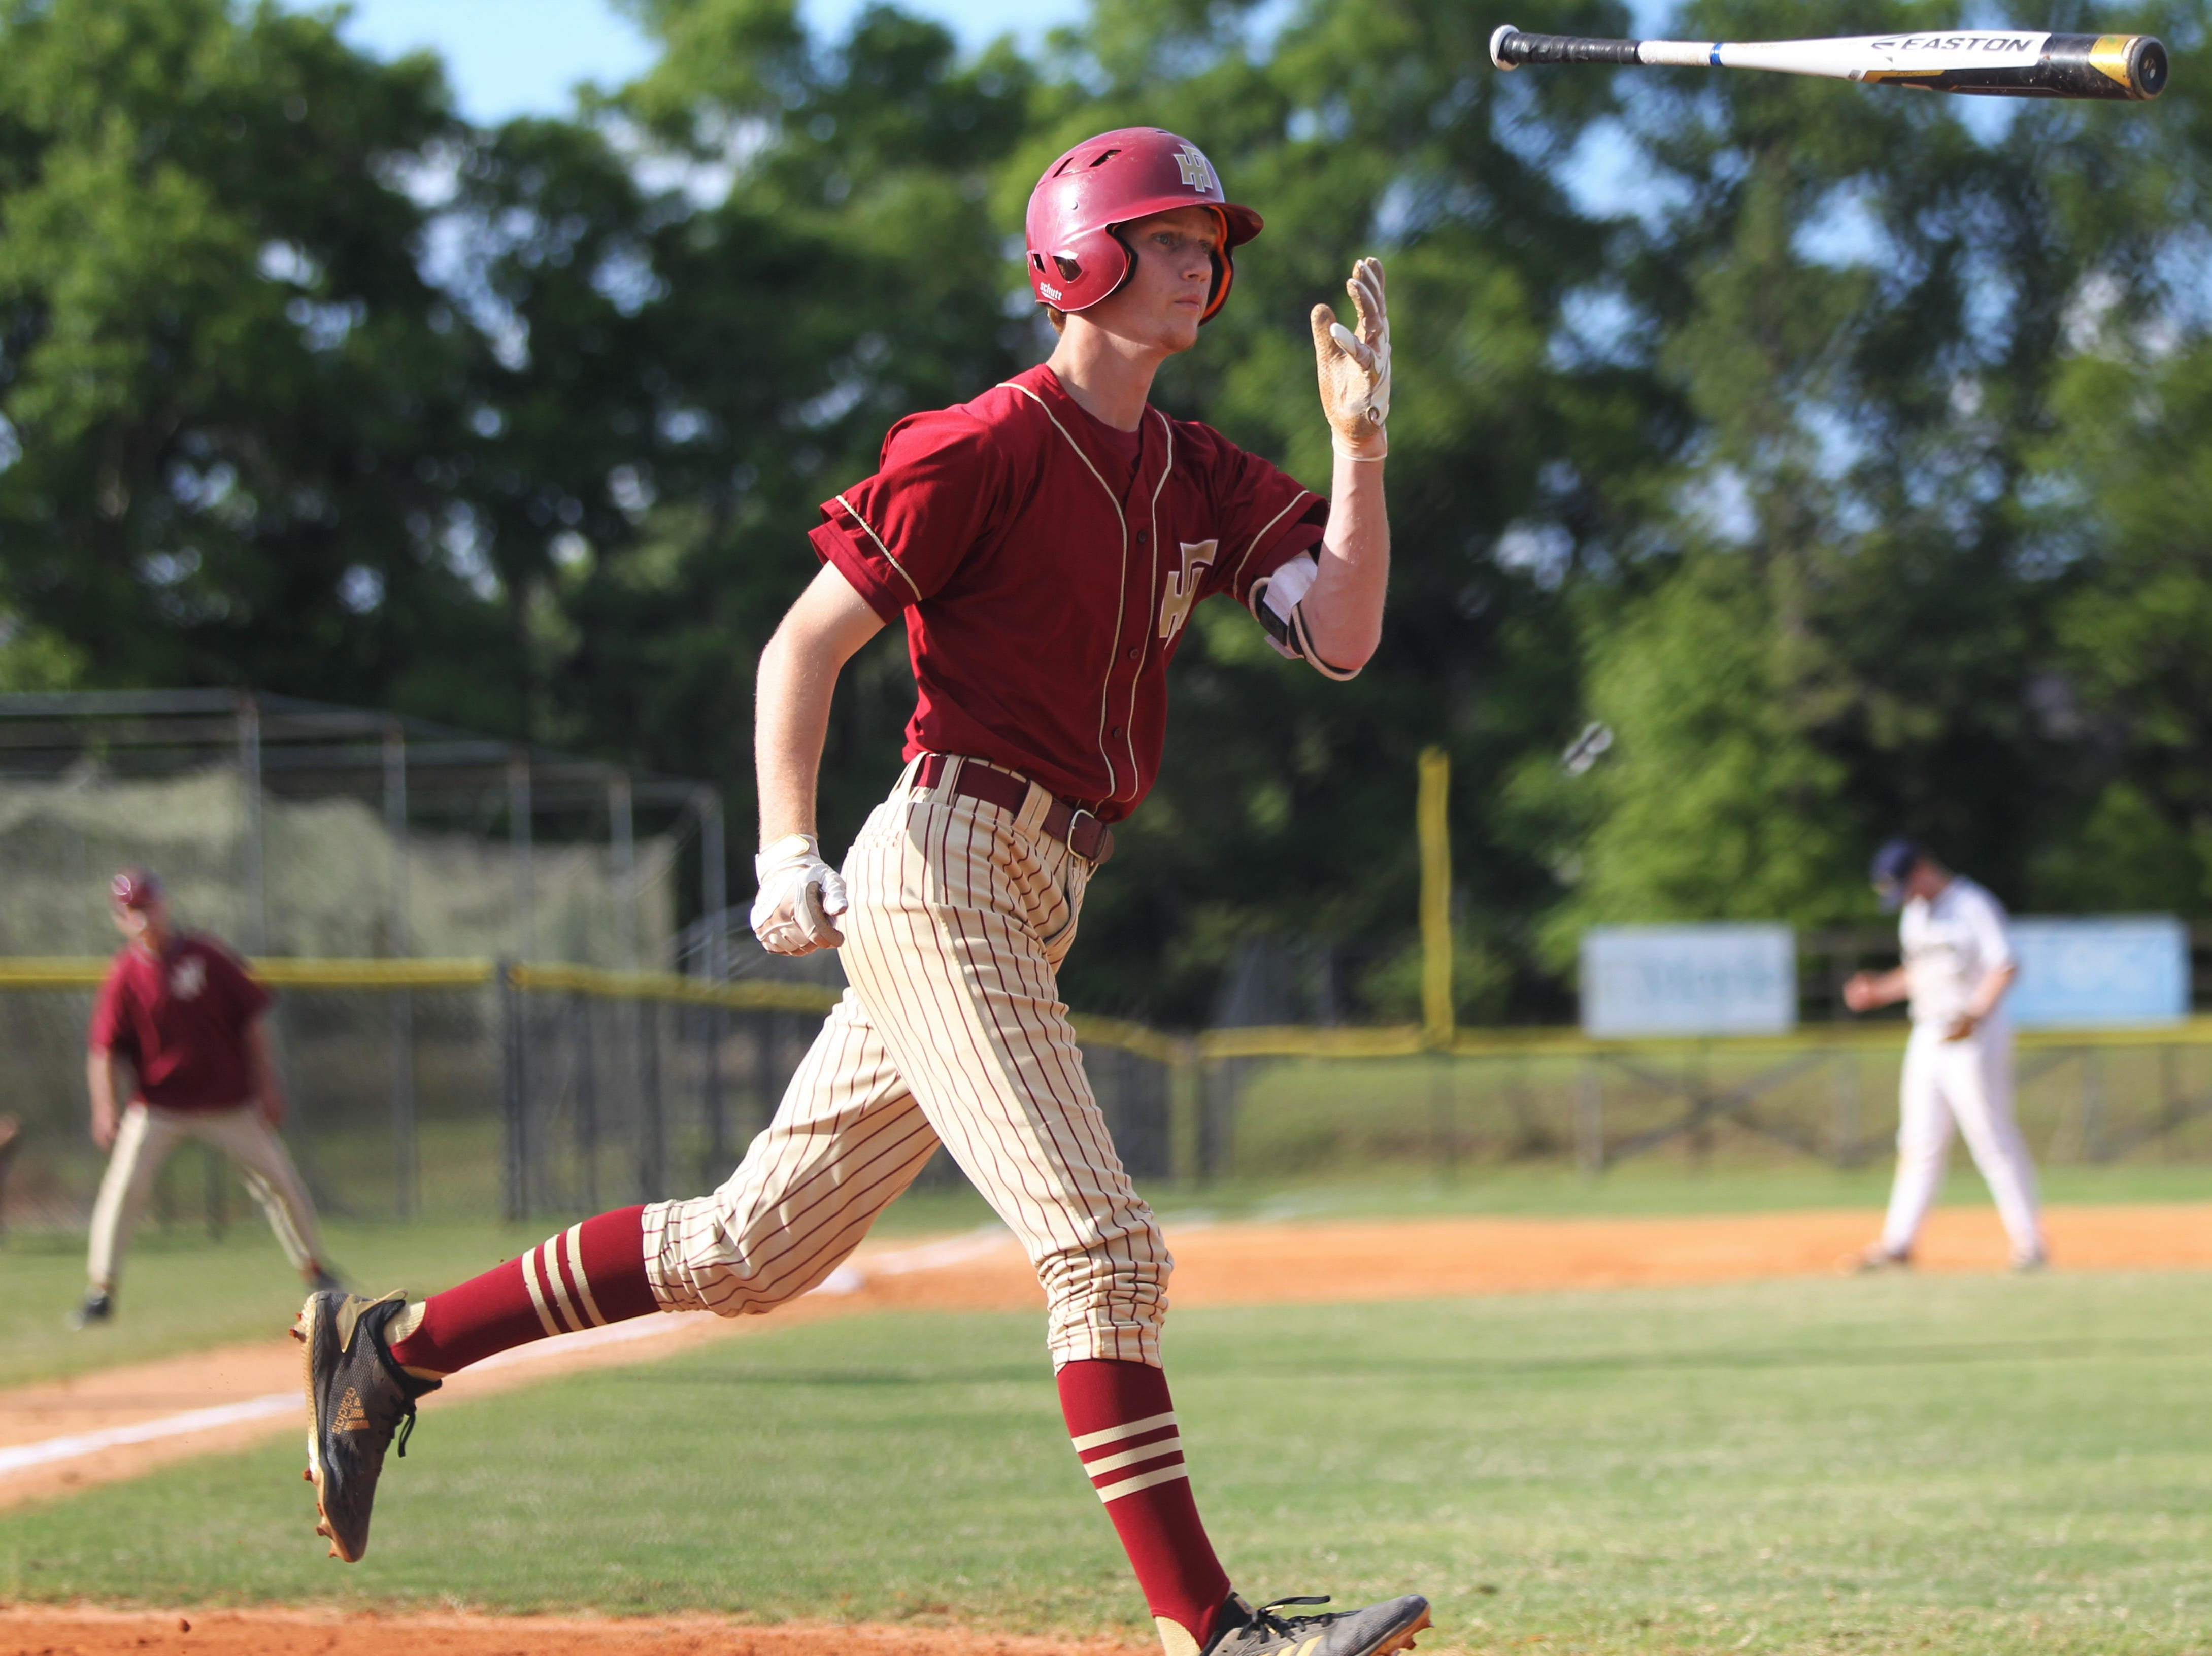 Florida High junior A.J. Thorp flips his bat after a walk as Florida High won 11-3 on the road at St. John Paul II on Tuesday, April 3, 2010.